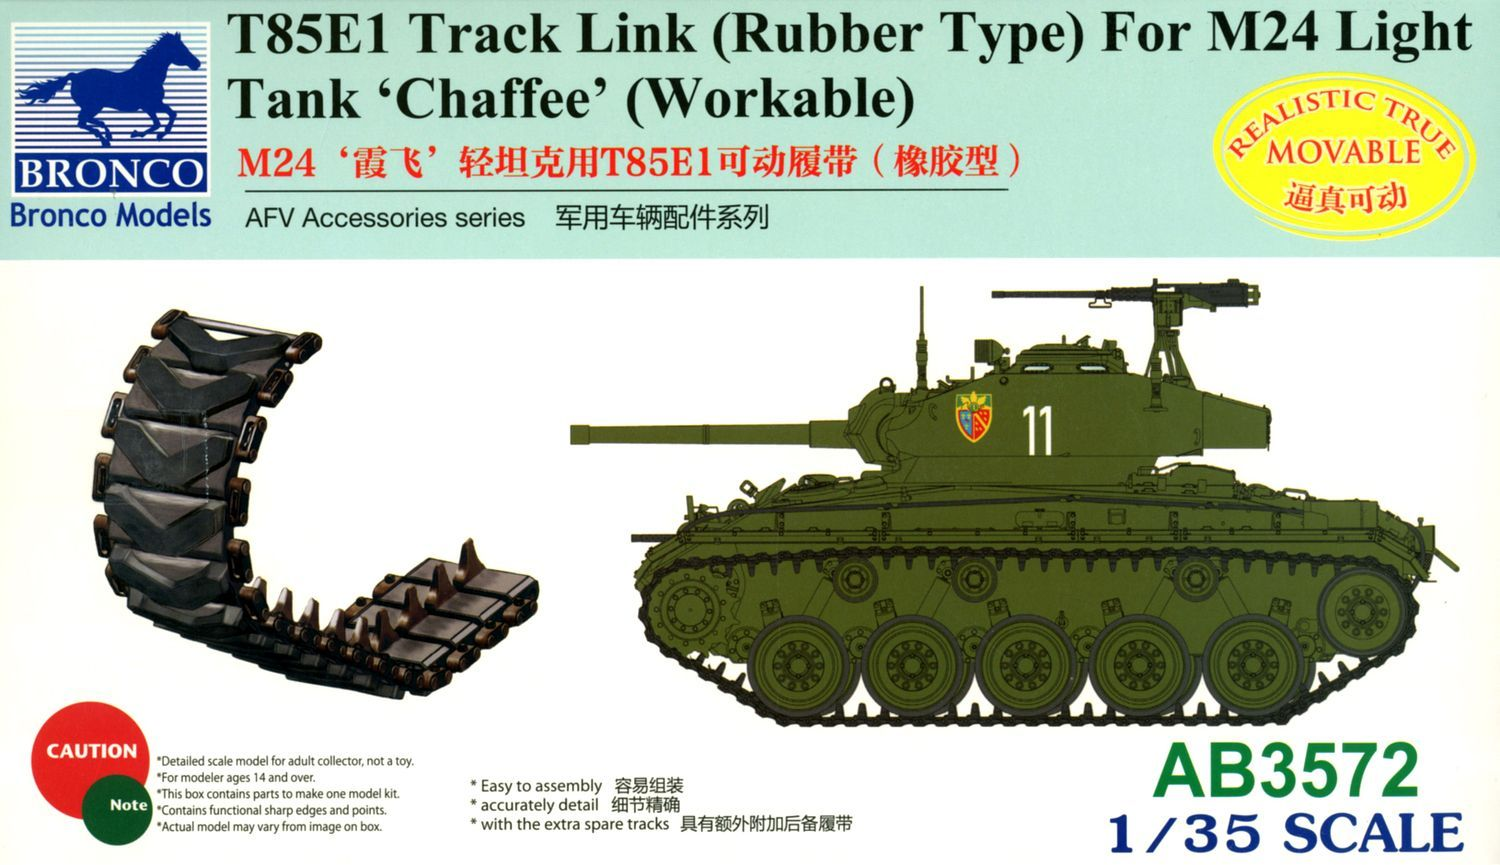 Bronco Models 1/35 T85E1 Track Link (Rubber Type) For M24 Light Tank Chaffee (Workable)